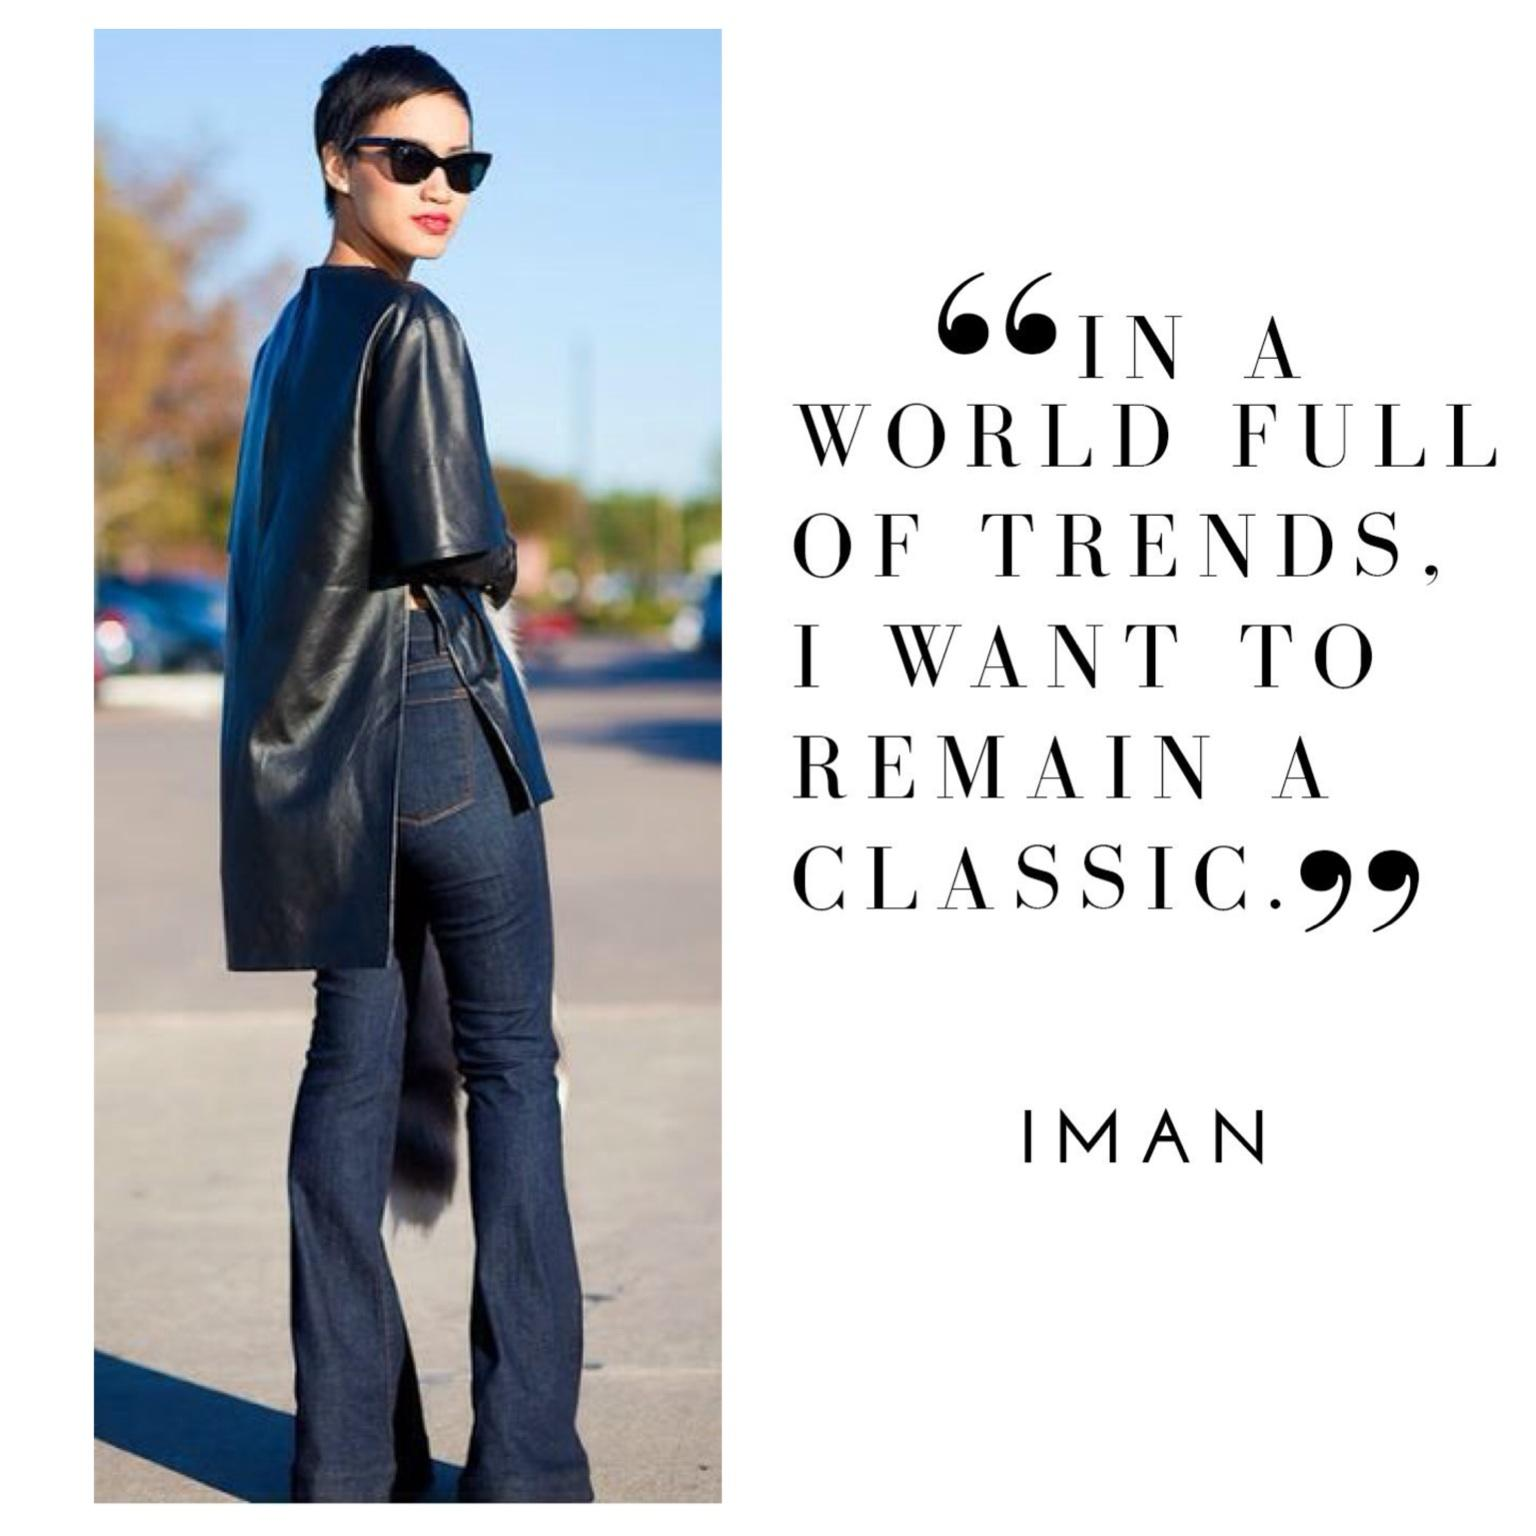 Classics never go out of style! Shop the trends & be inspired http://t.co/mQo0x4xq1n #Leather #ImanAgelessChic http://t.co/RTX0lf72wc